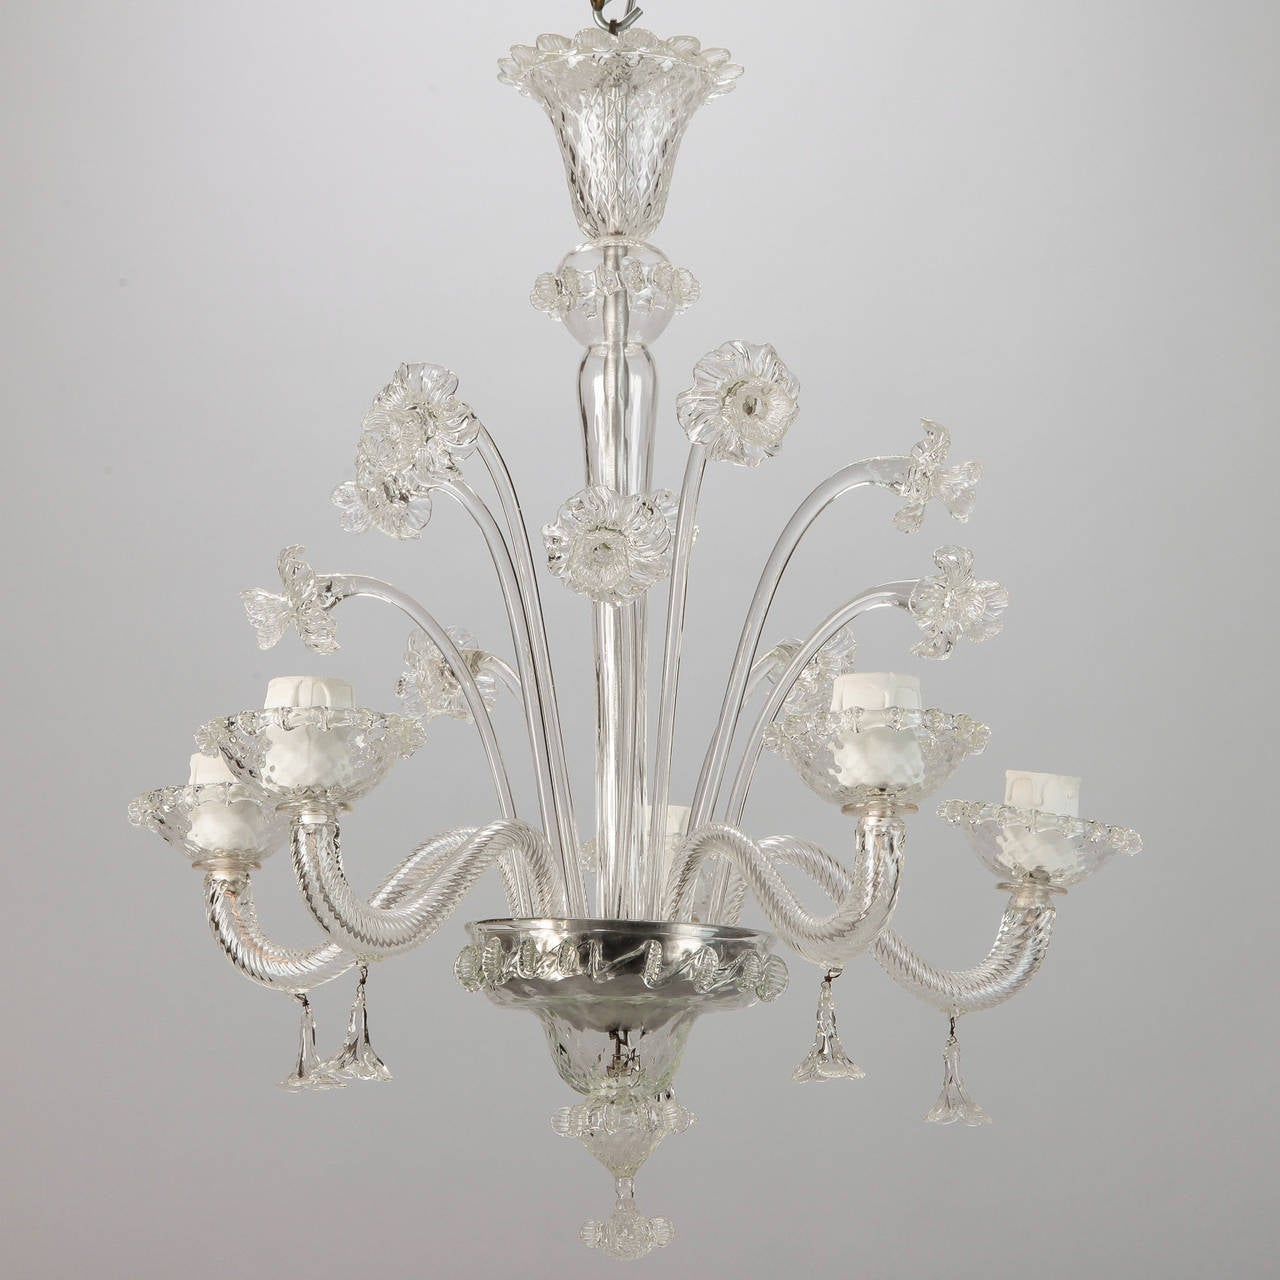 Venetian glass chandelier with several handcrafted large daffodils and five candle style lights, circa 1900. New electrical wiring for US standards. # of sockets: Five Socket type: Regular.